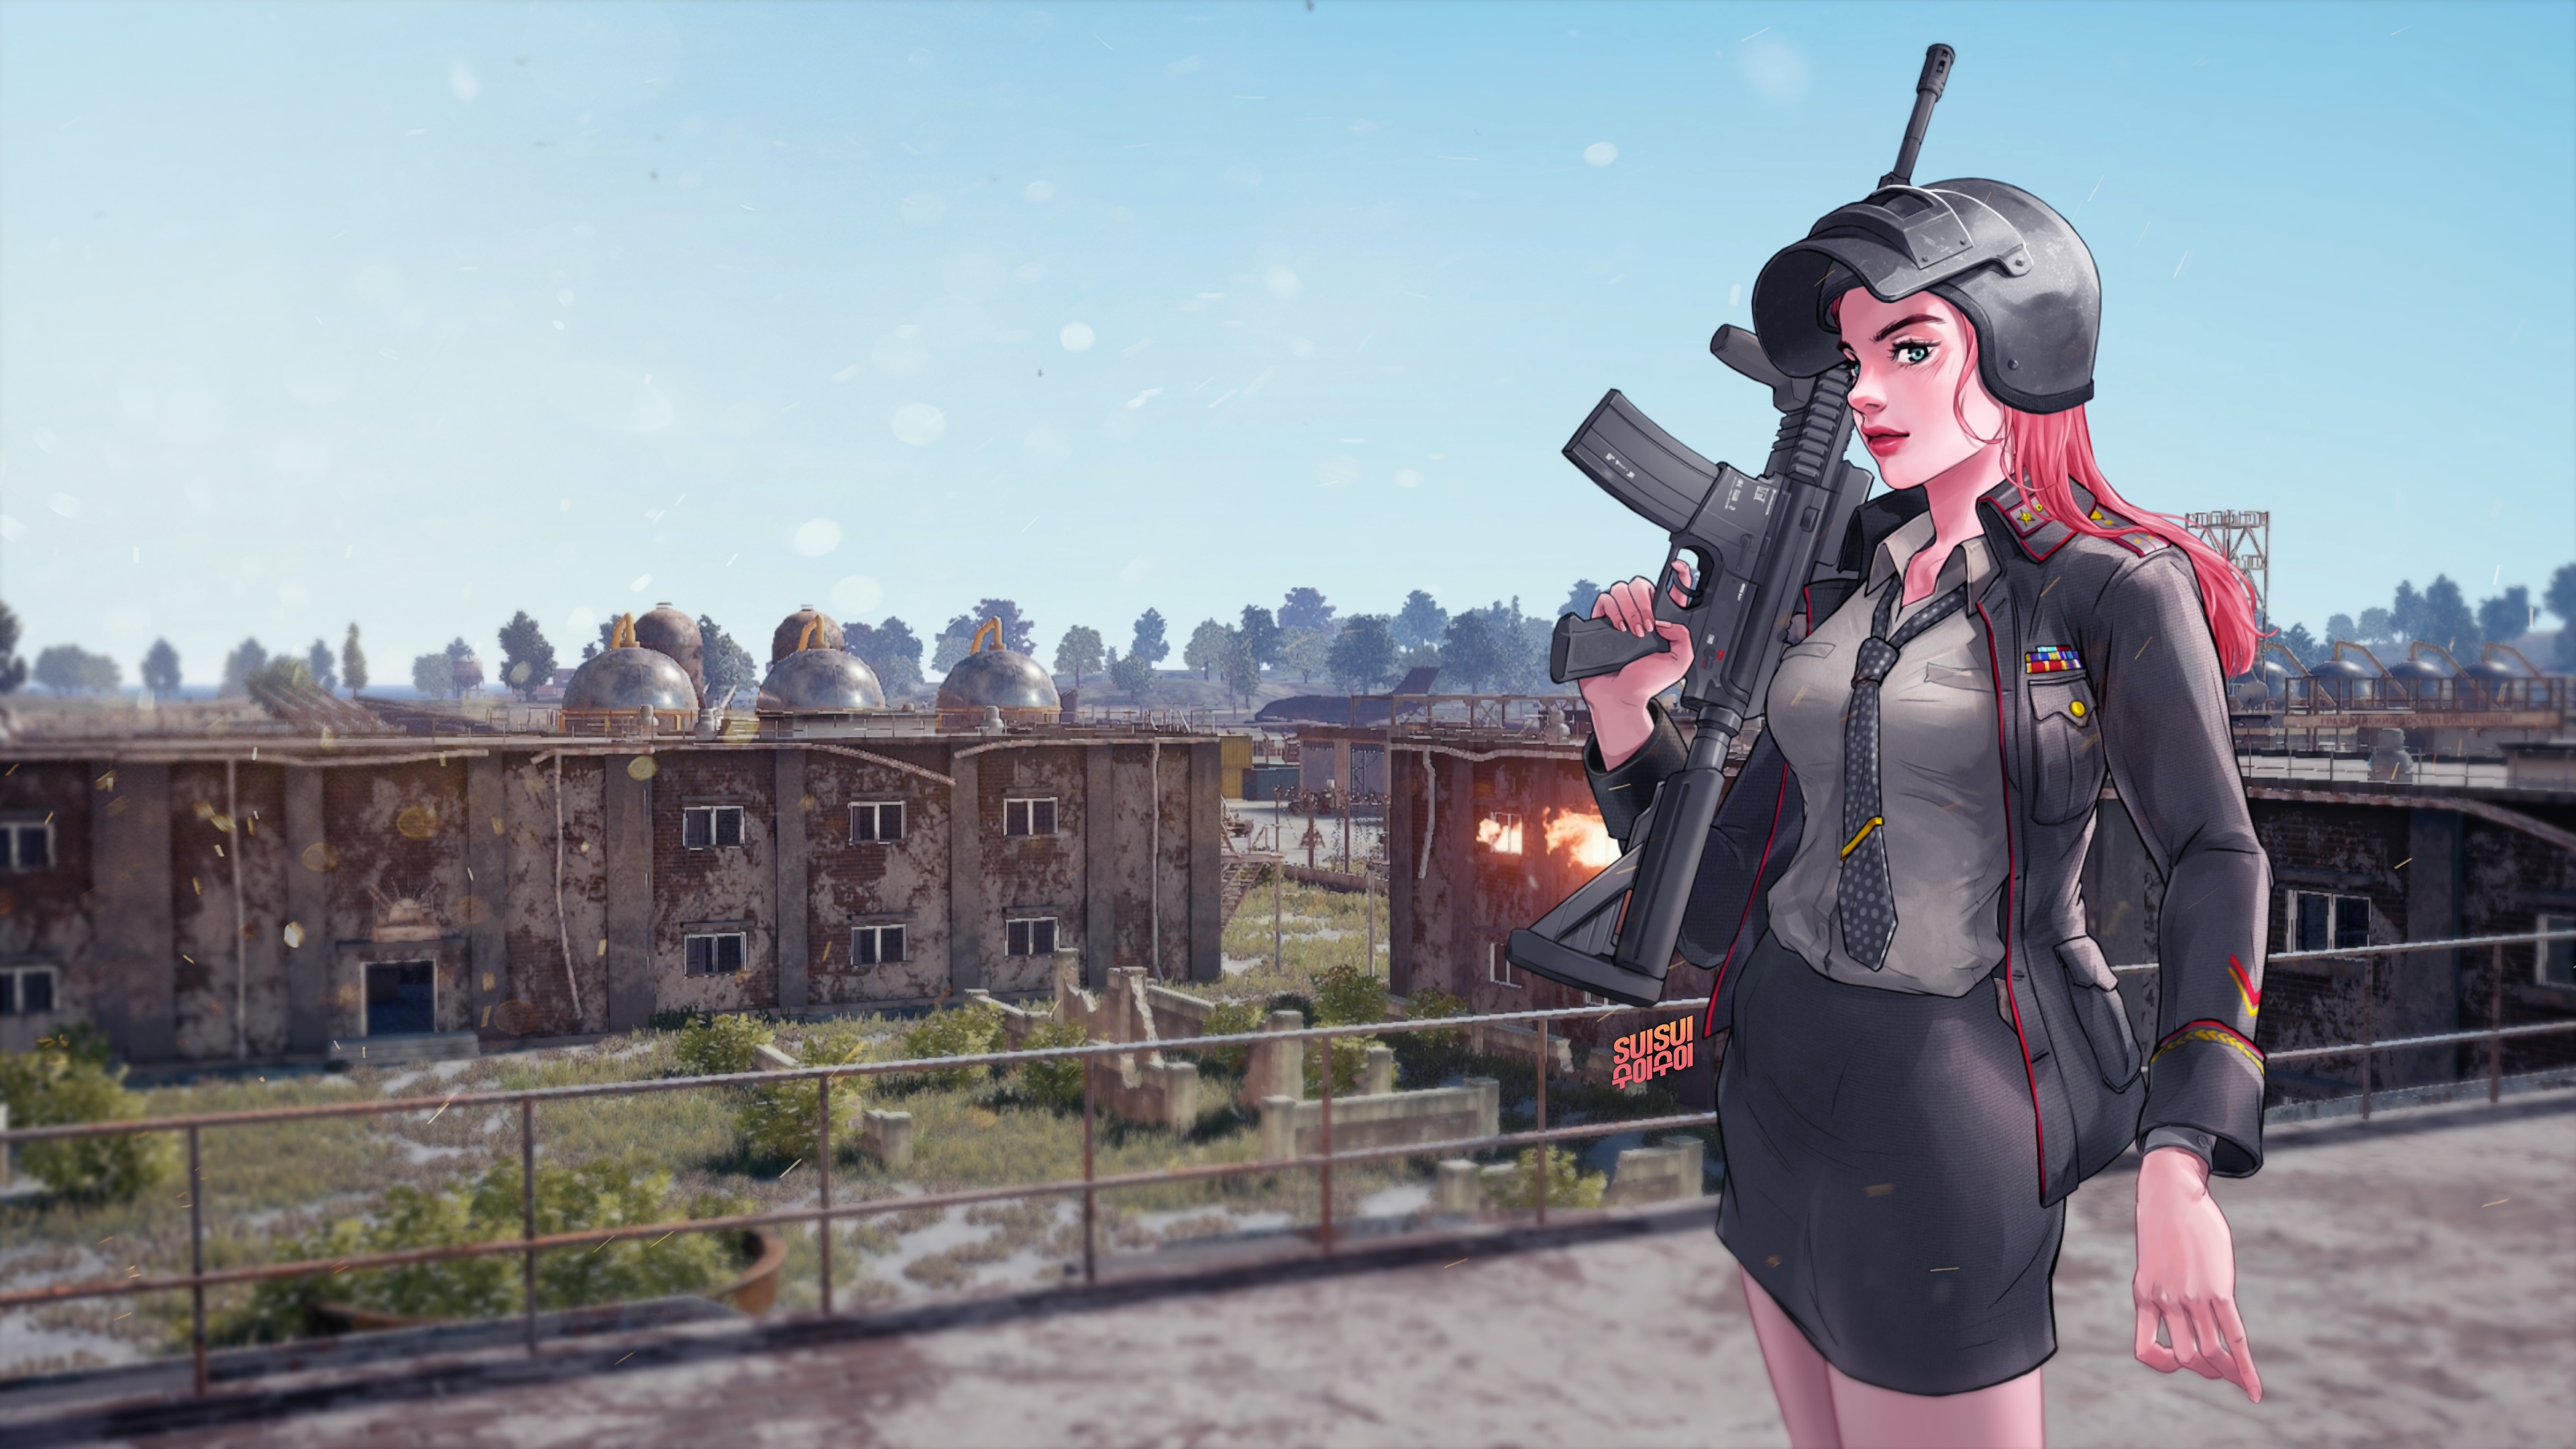 Pubg Game Girl 4k Hd Games 4k Wallpapers Images Backgrounds